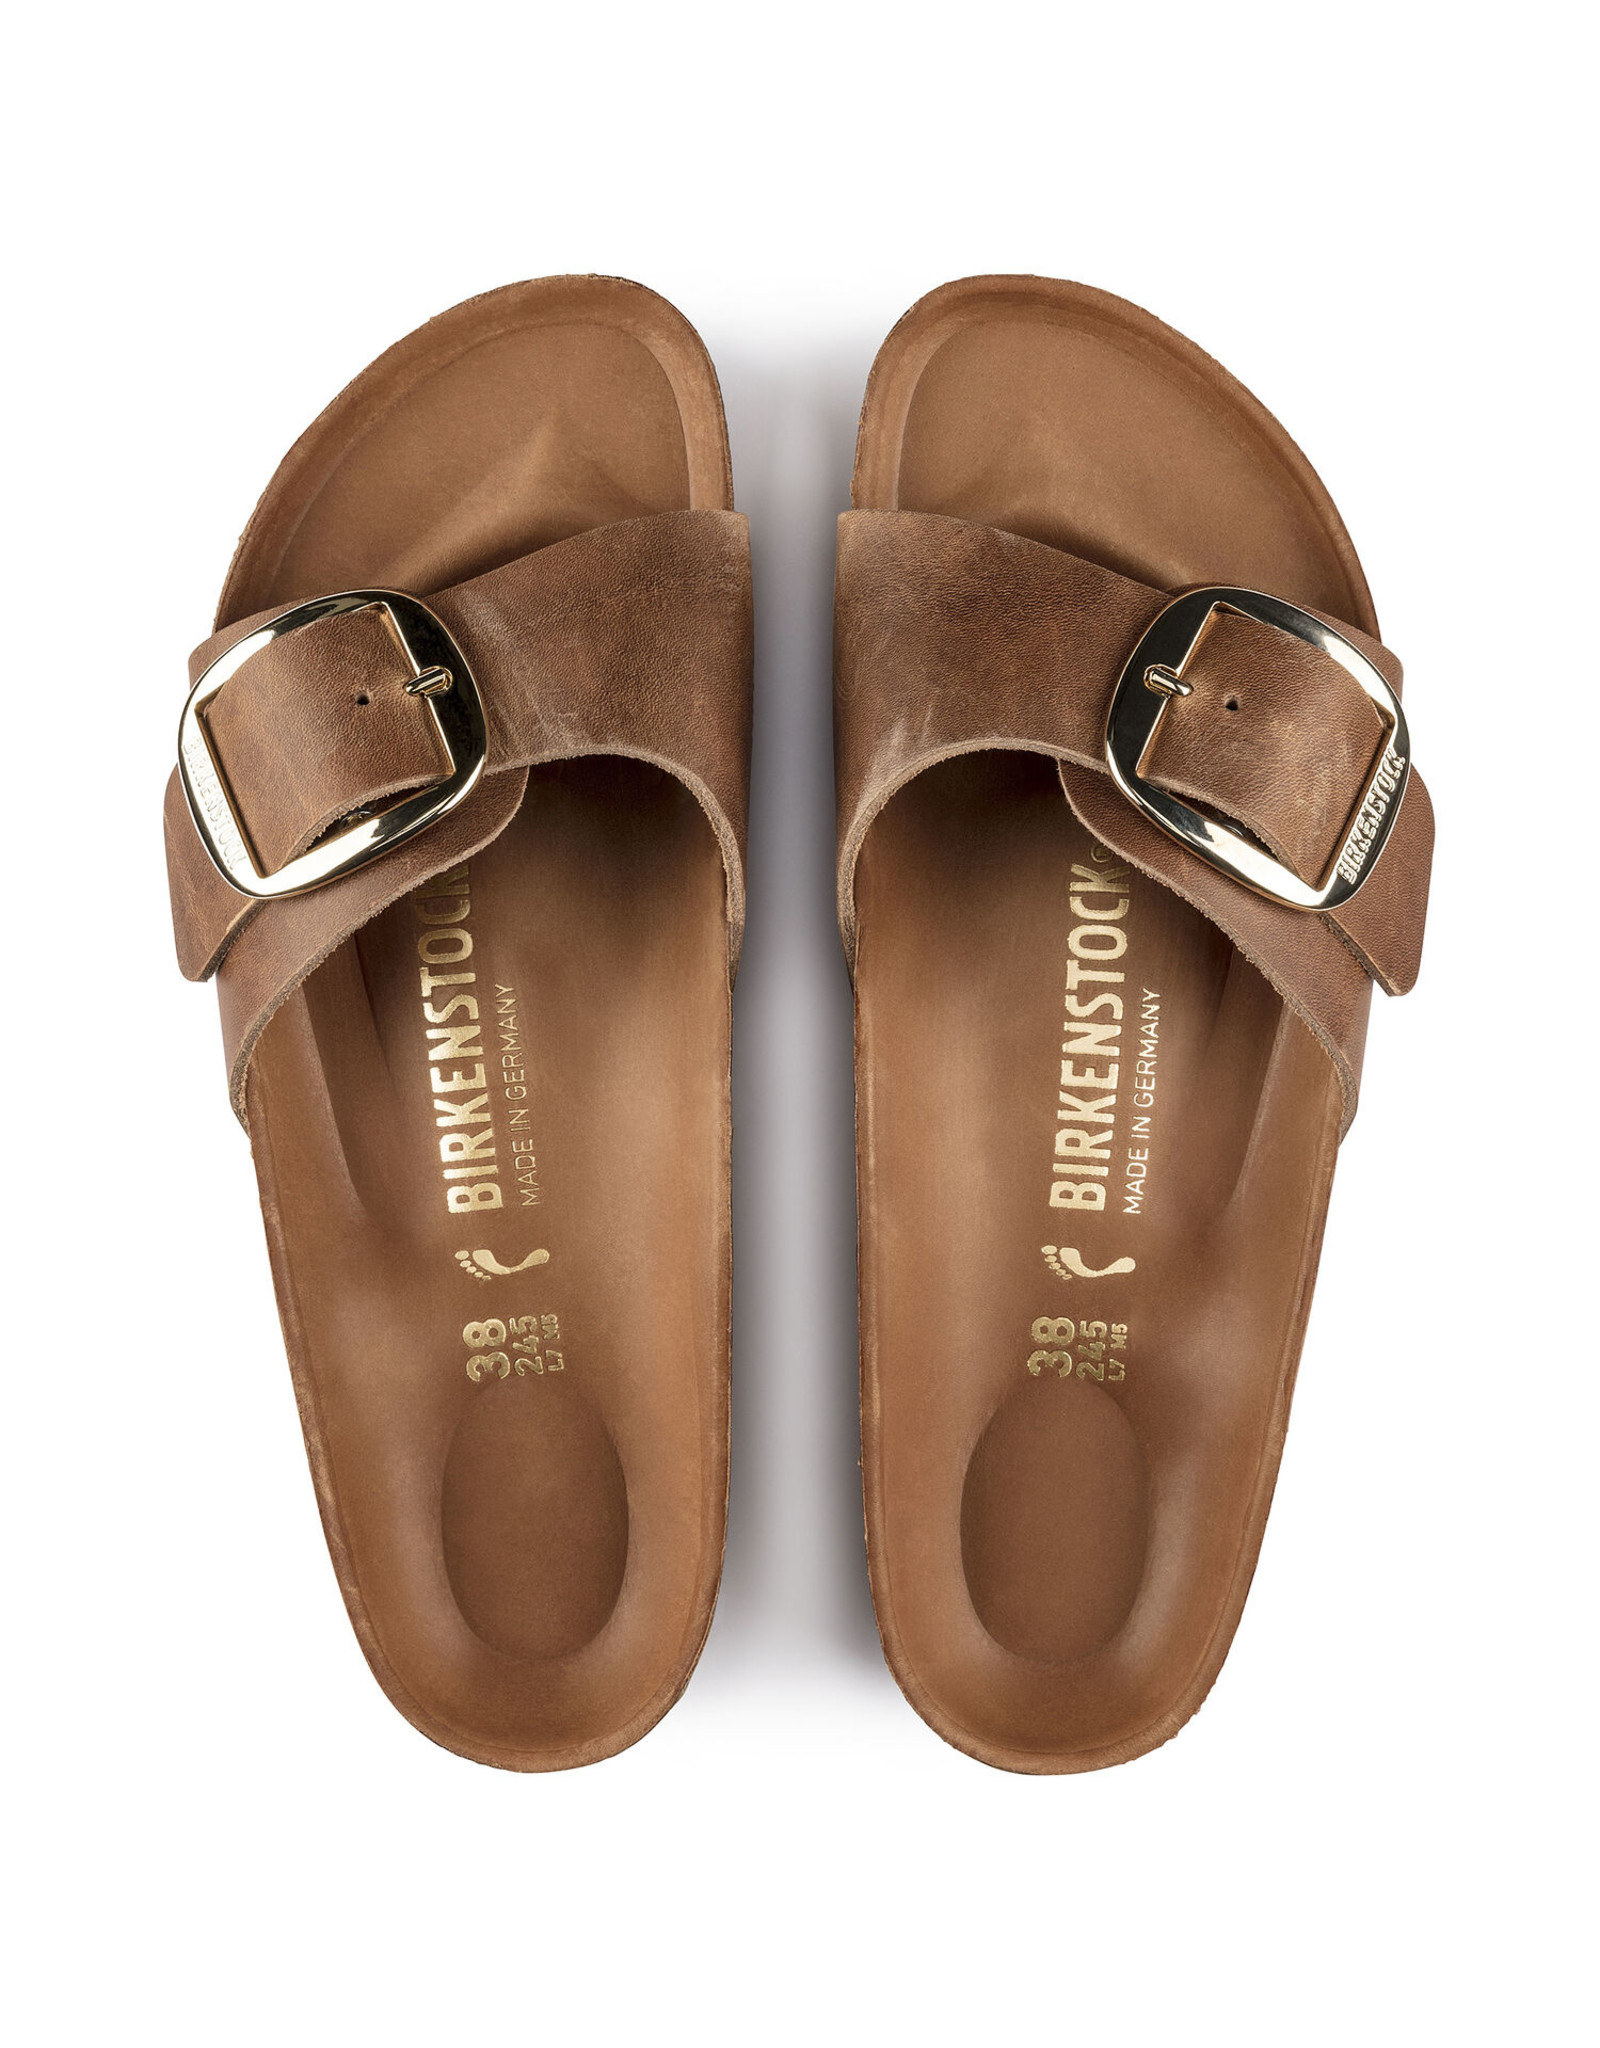 BIRKENSTOCK MADRID BIG BUCKLE OILED LEATHER-COGNAC